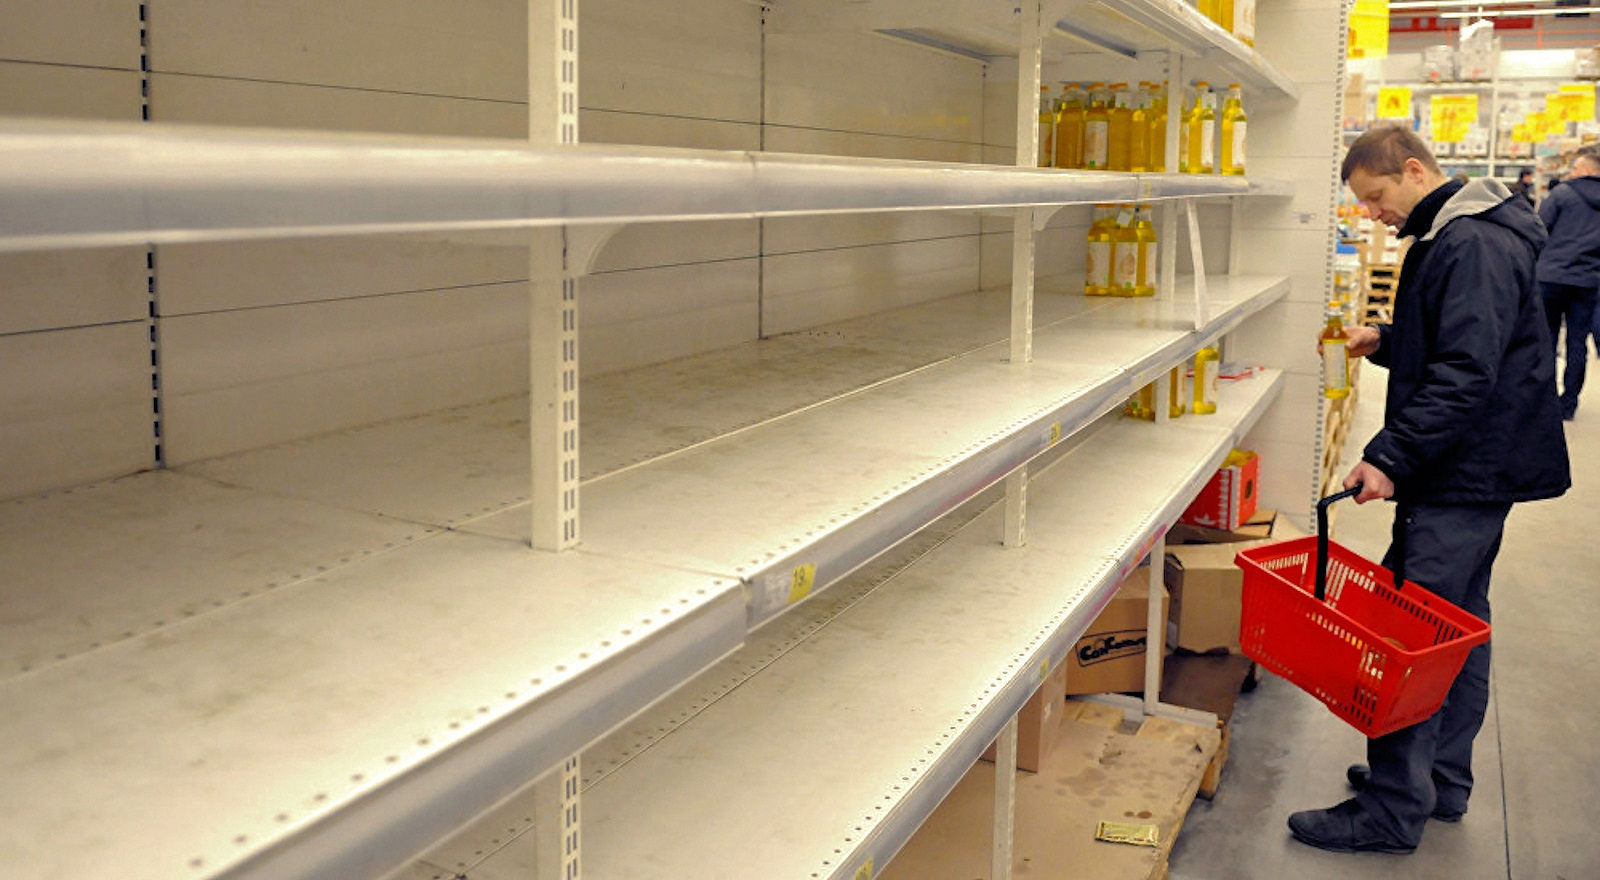 00-russia-ukraine-empty-shelves-231016